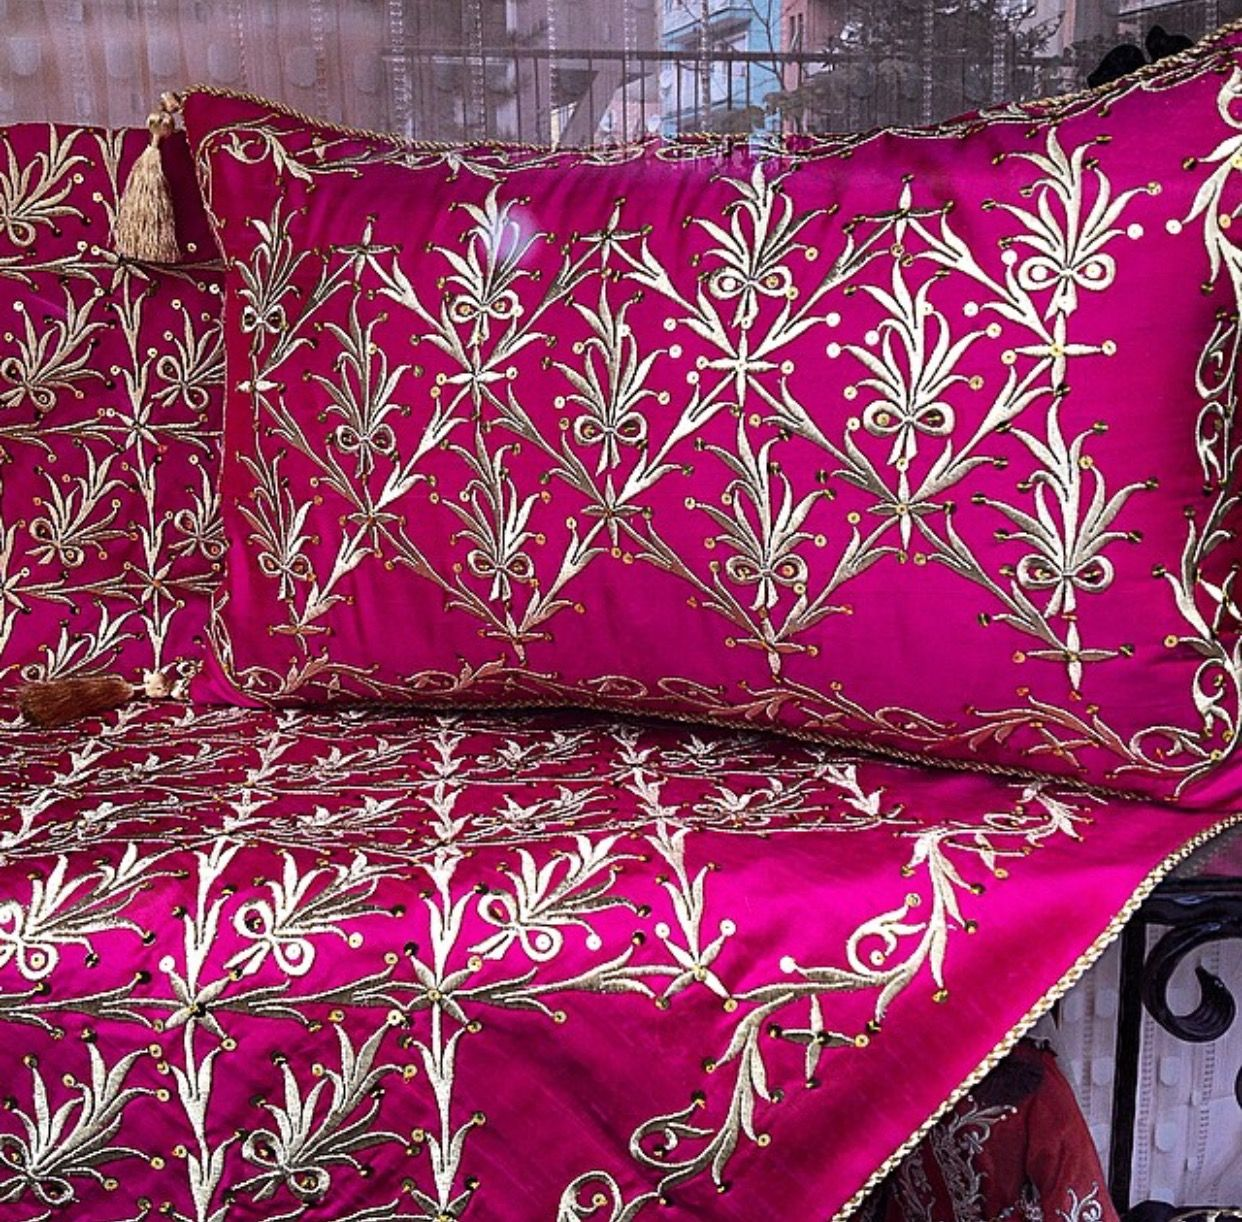 Pin by nerainer on sewing projects pinterest embroidery hand